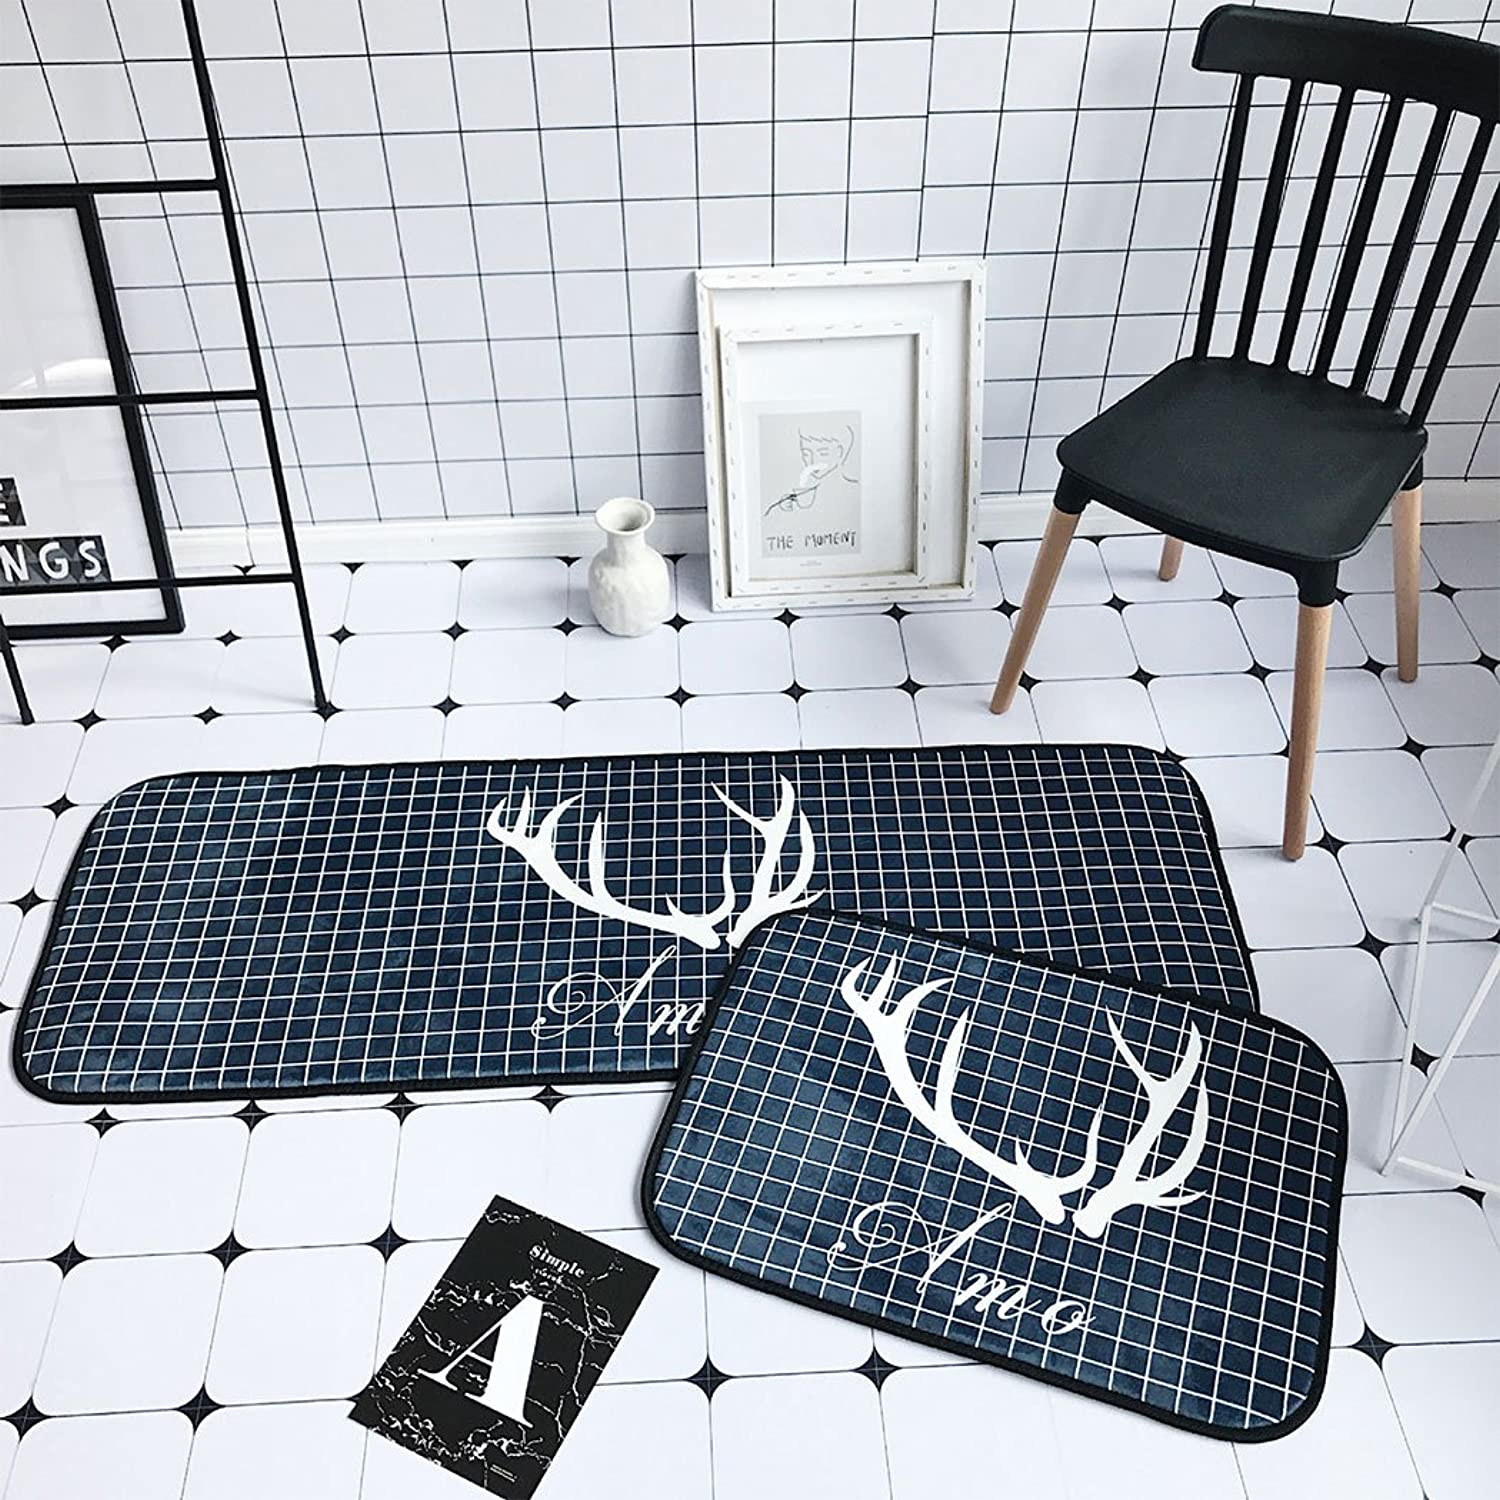 SUN-Shine Durable Home and Kitchen Rug Runners with Non-Slip Rubber Backing Indoor Doormats Floor Mat Carpet, Geometric Accent Antlers Pattern